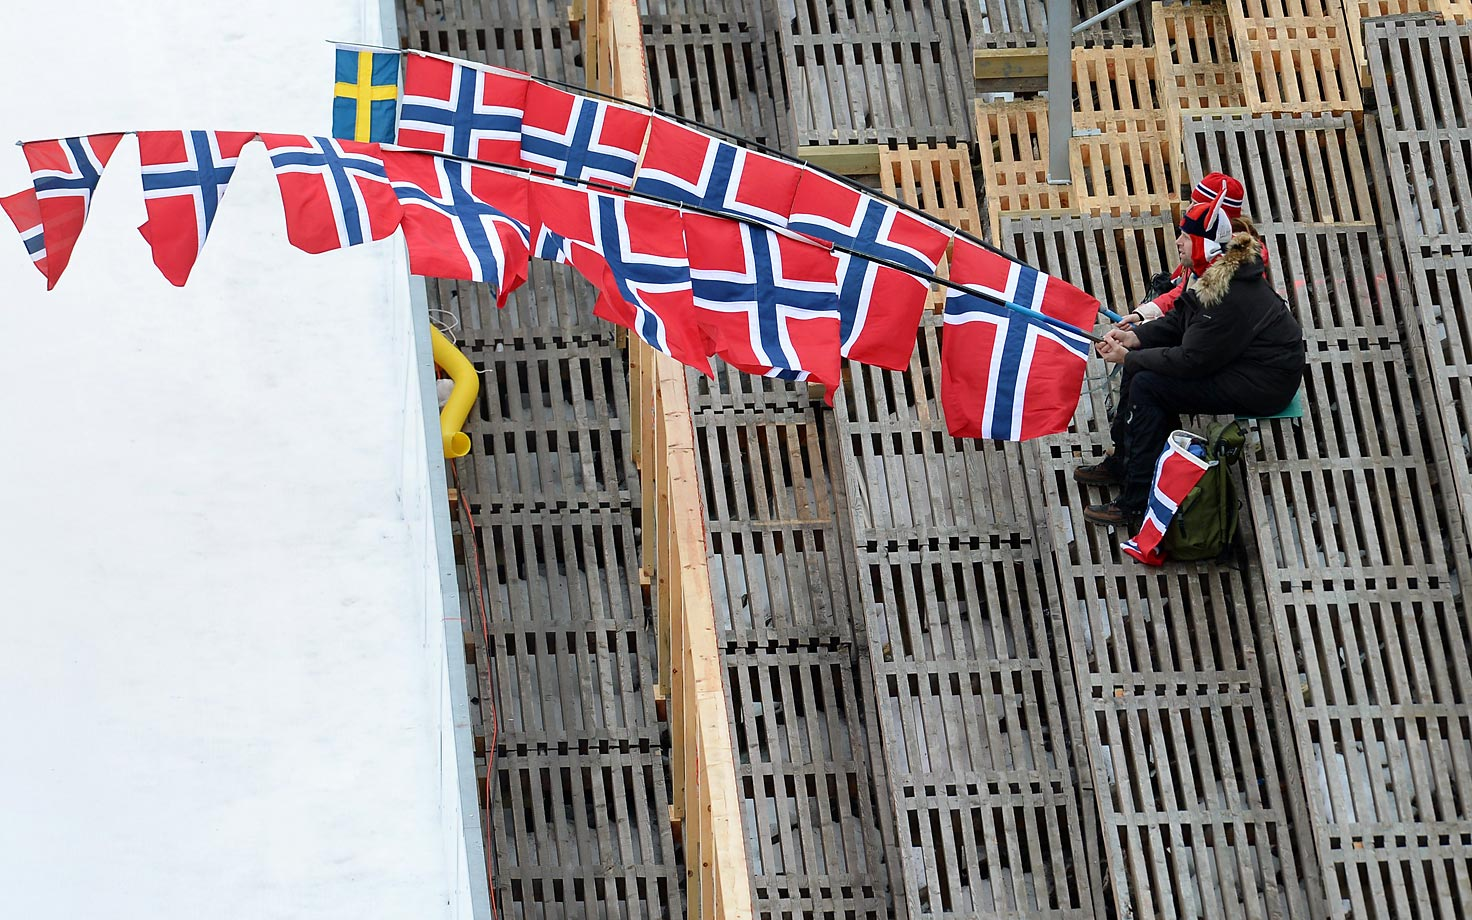 A Norwegian fan at the Nordic Combined ski jumping competition in Falun, Sweden.